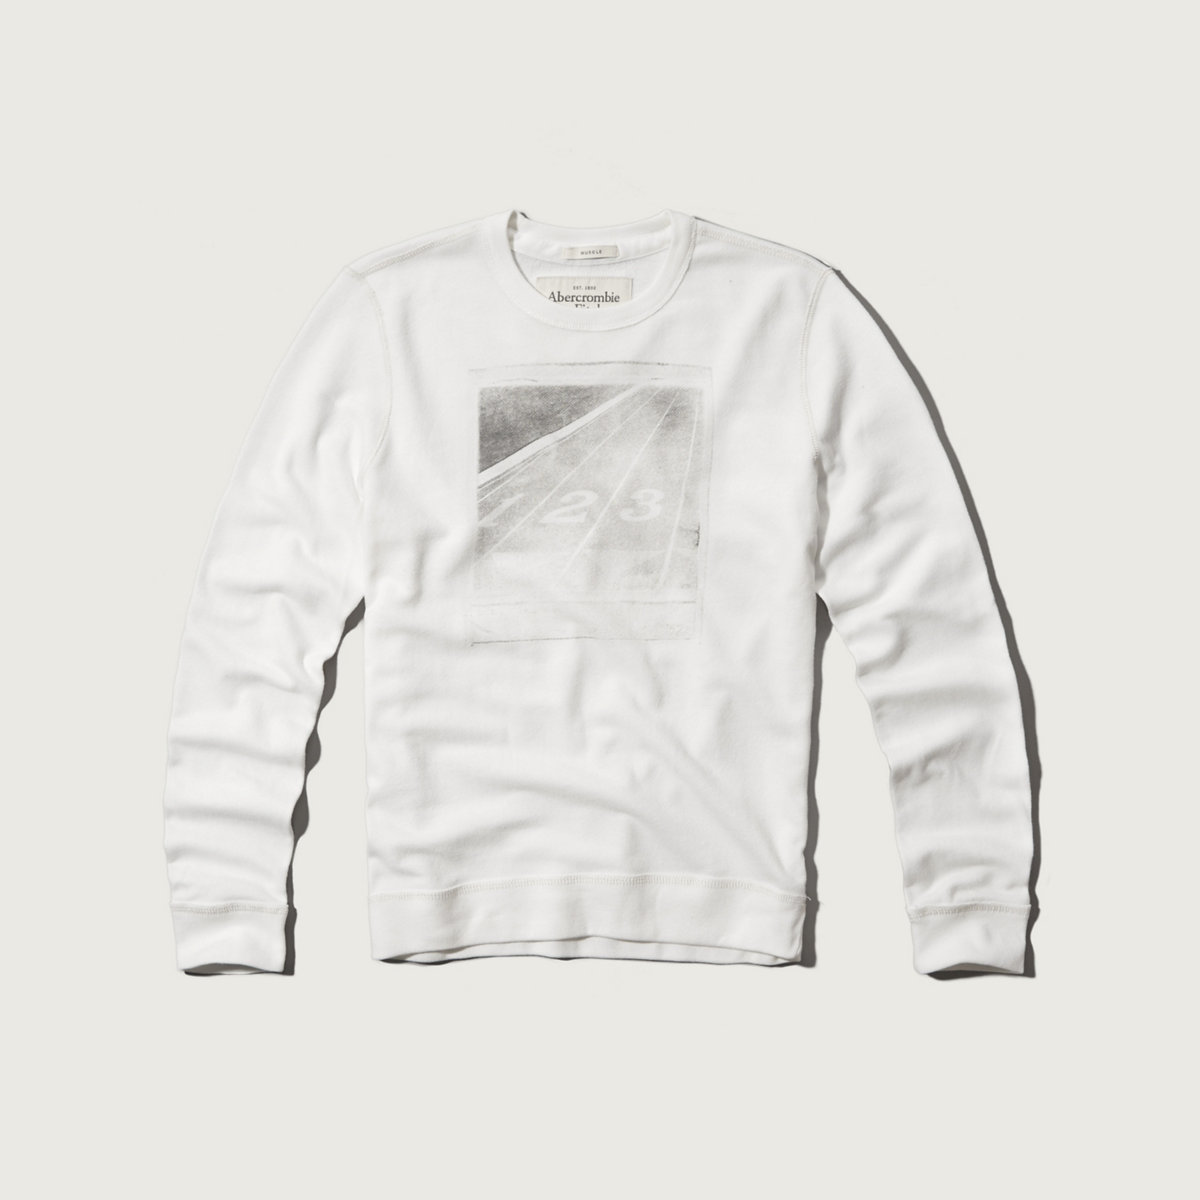 Track Polaroid Photoreal Graphic Sweatshirt